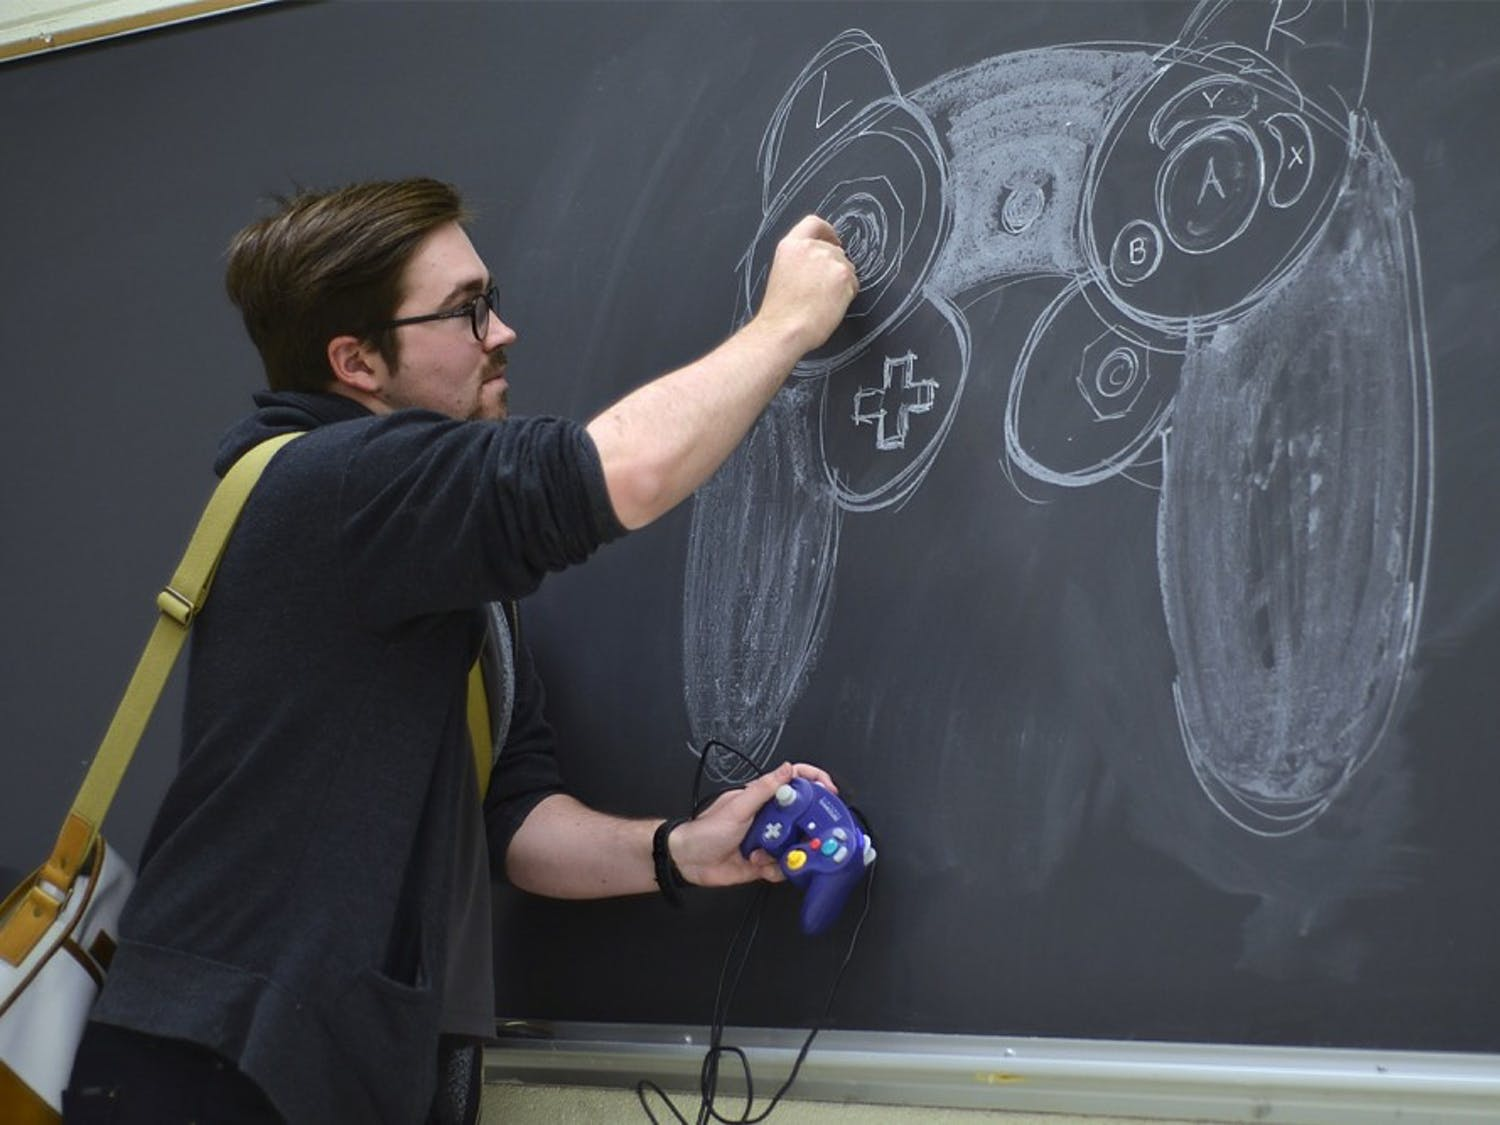 Will Parti taught acourse studying video games last summer.